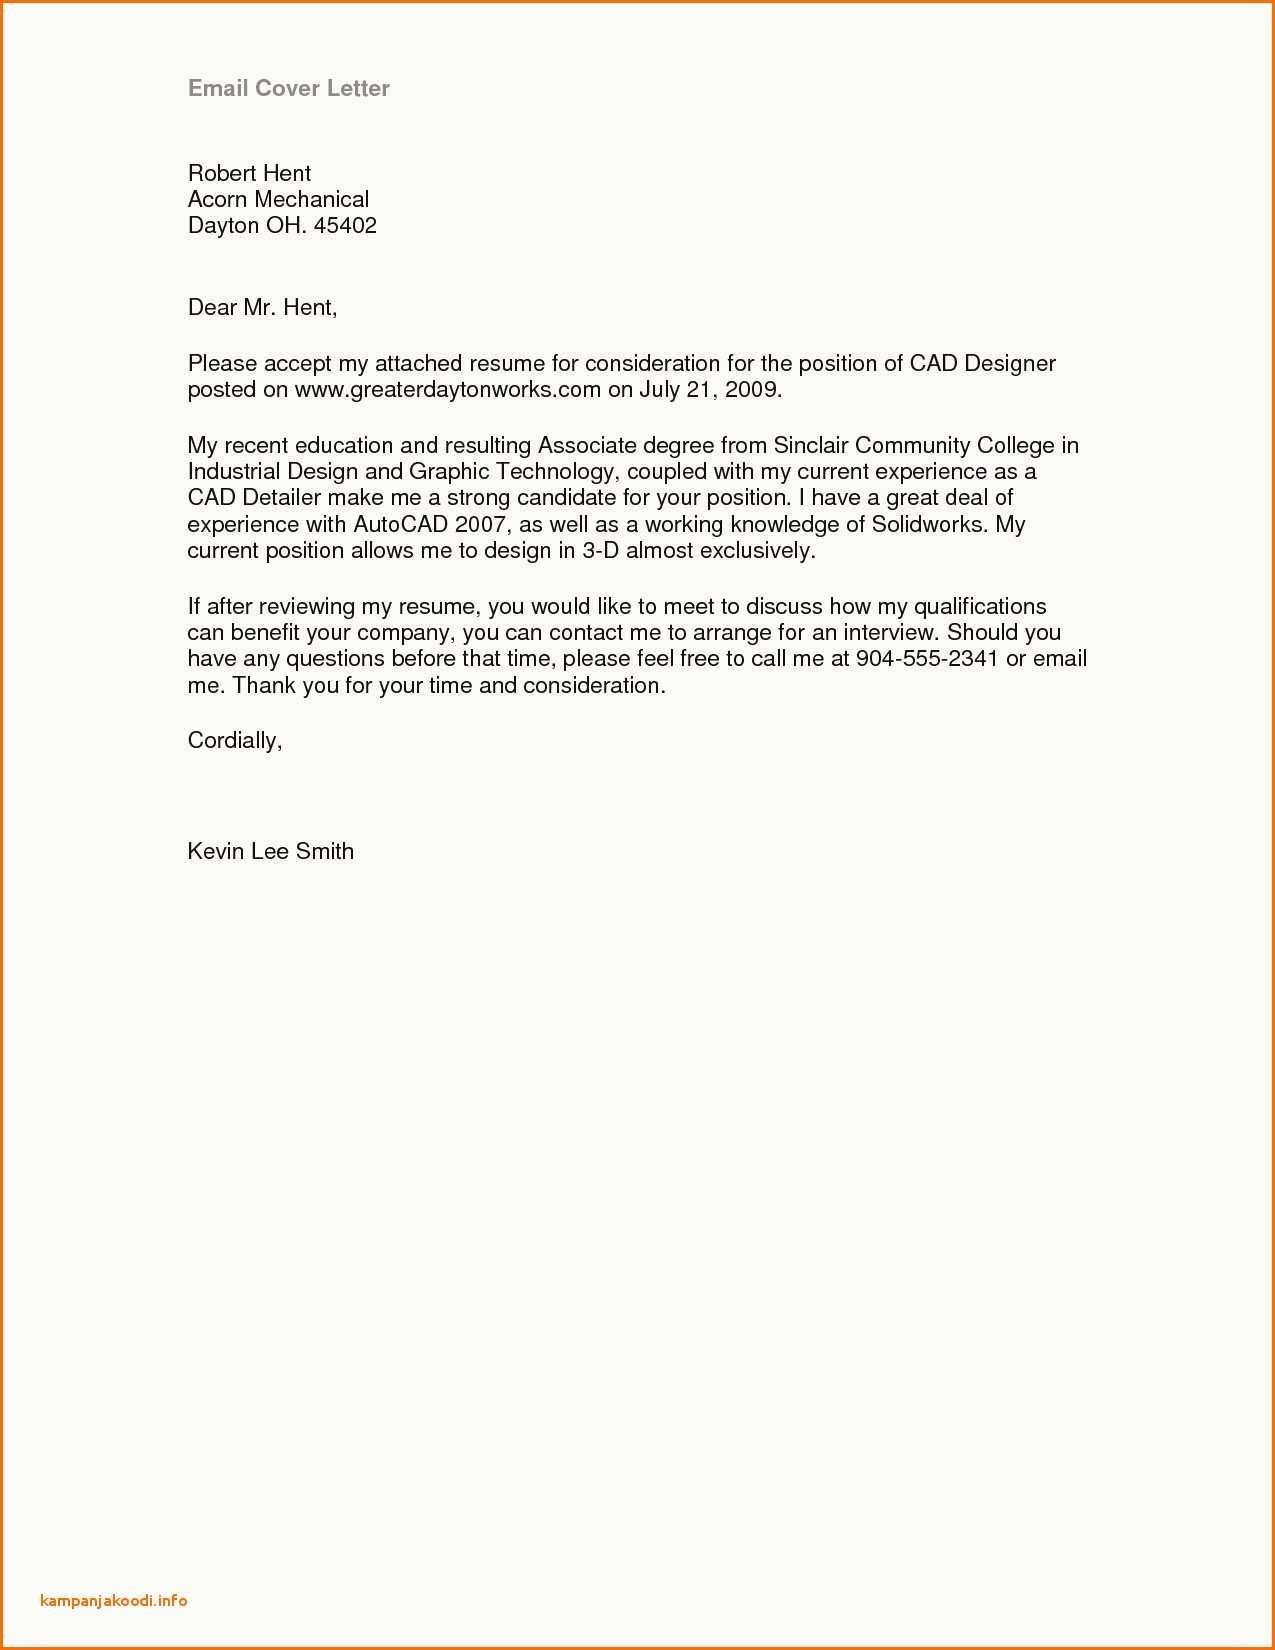 Application Letter Sample In Email Cover Letter Examples For Every Type Of Job Seeker The Muse As An Applicant You Would Also Want The Hiring Manager To See Shjbaaisopan